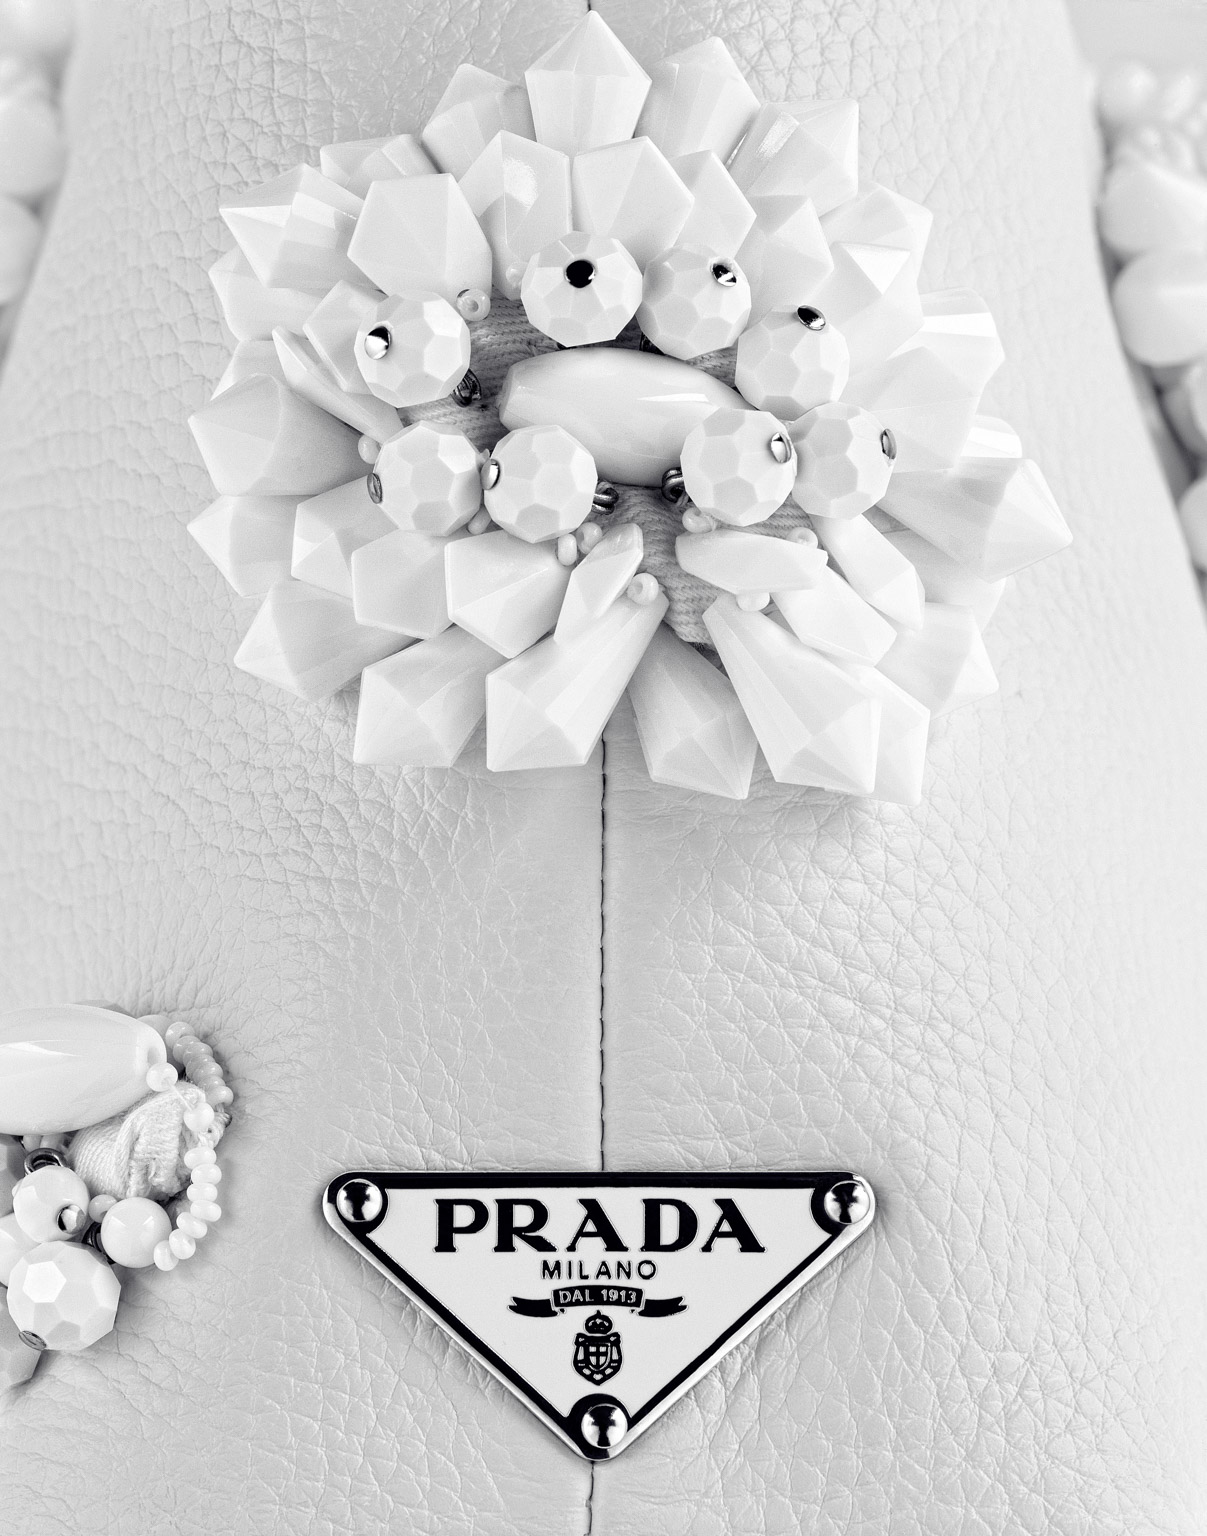 080_prada_wht_bag_detailf